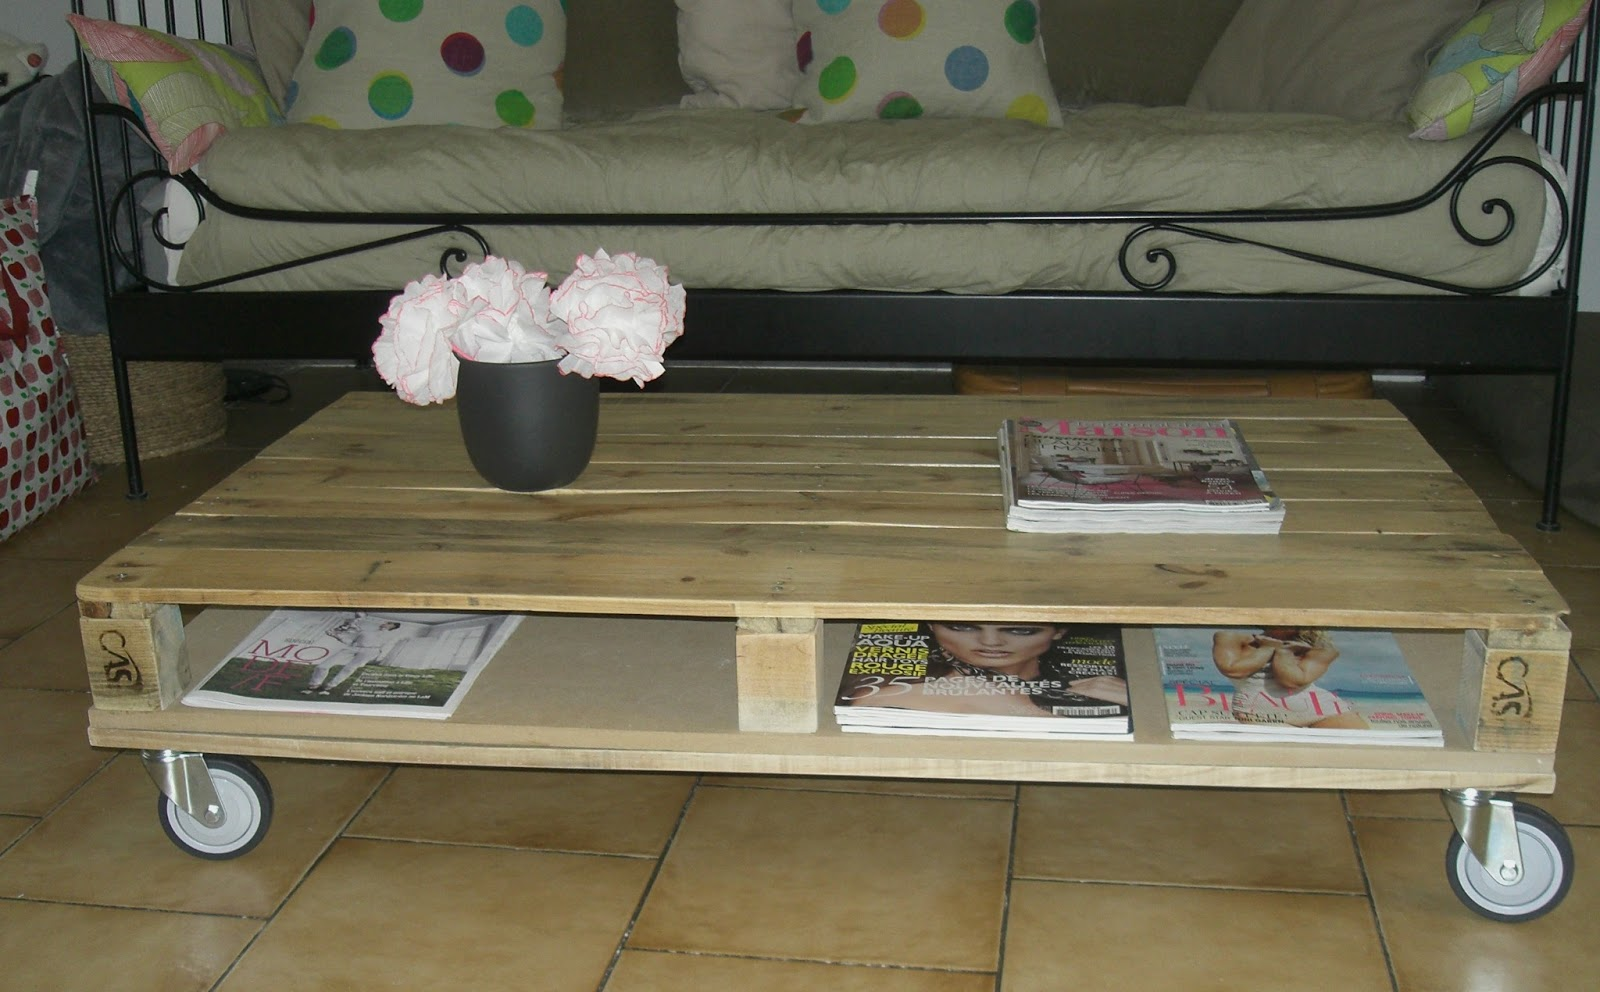 Gabulle in wonderland transformer une palette en table basse - Fabriquer une table en palette ...